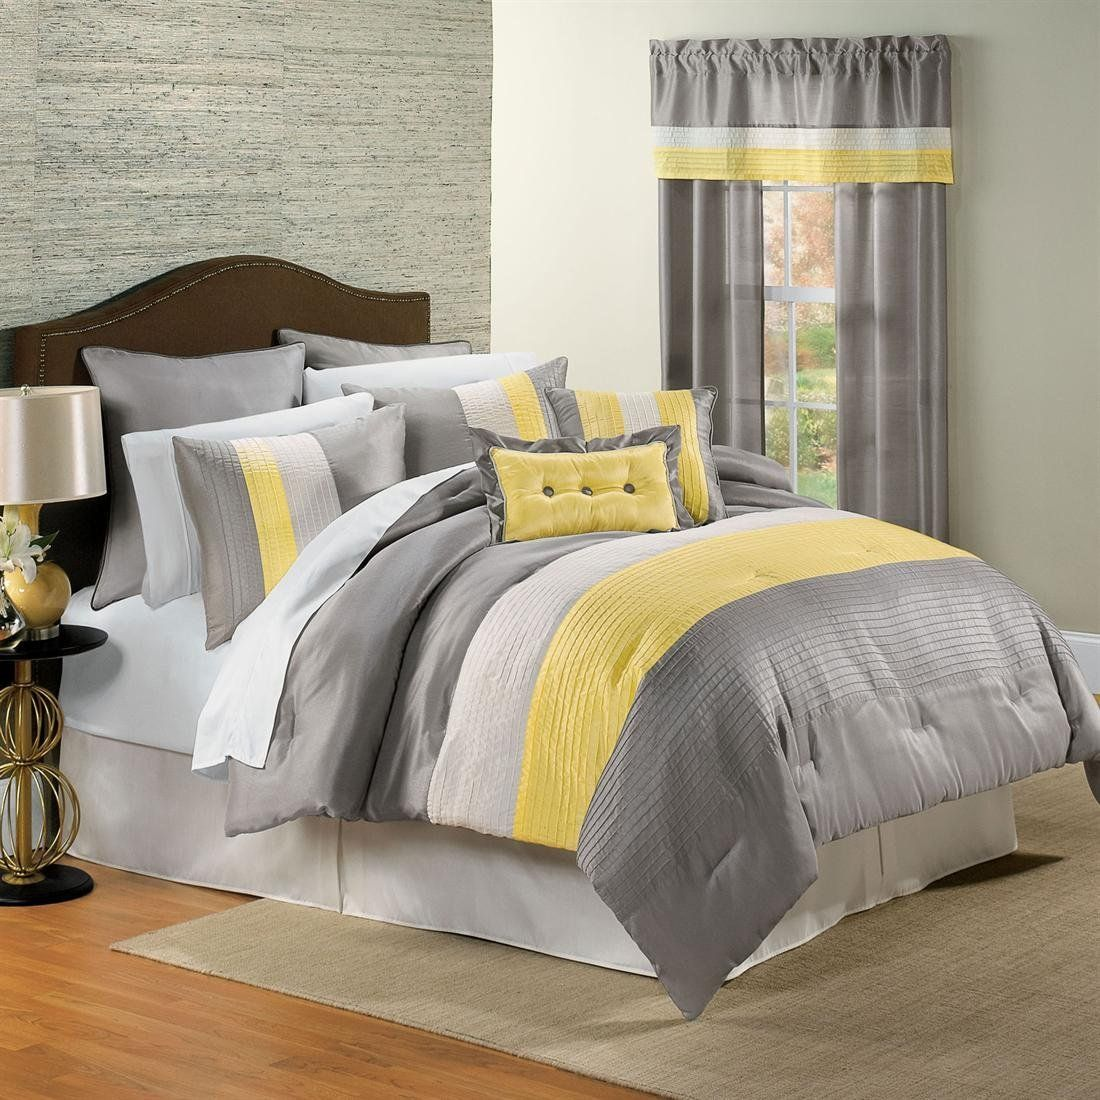 Yellow And Grey Bedding On Pinterest Comforter Sets Grey Yellow And Yellow